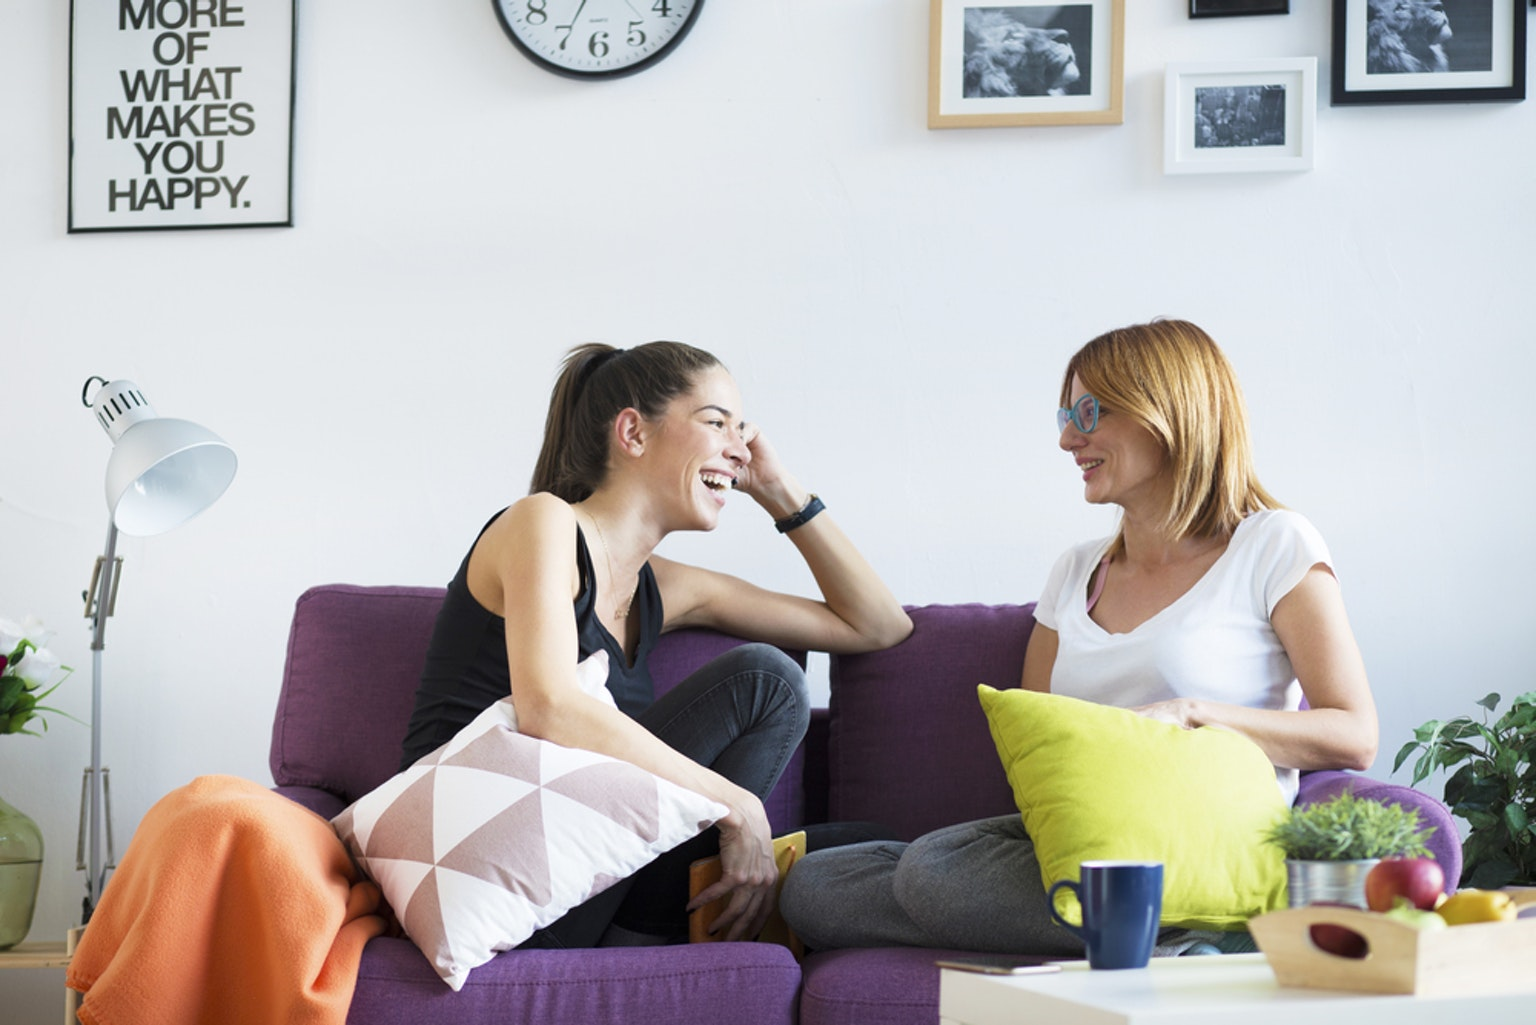 How Can You Tactfully Handle Roommate Differences?